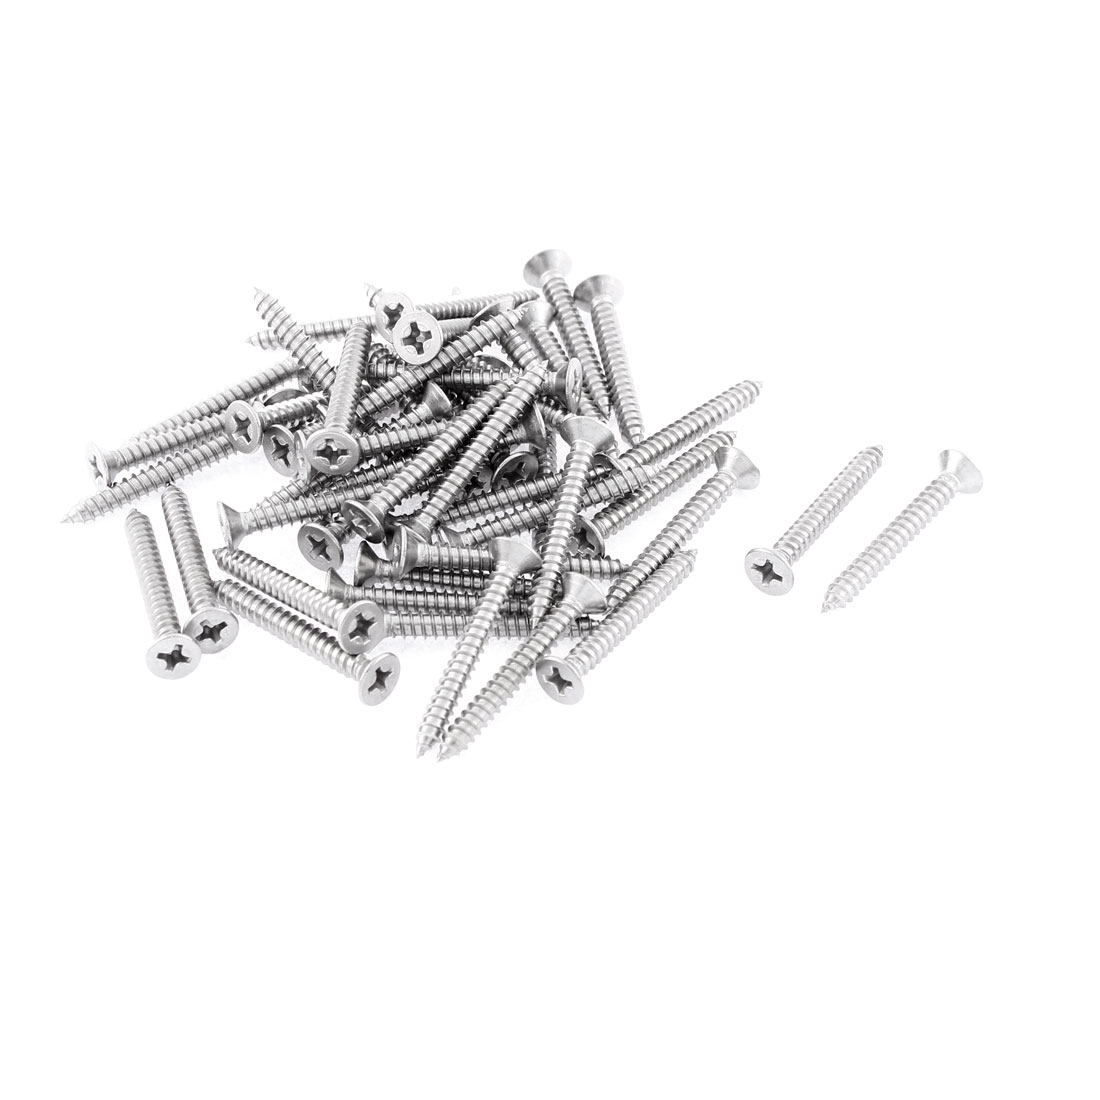 50 Pcs 3.9mmx32mm Stainless Steel Phillips Flat Head Sheet Self Tapping Screws